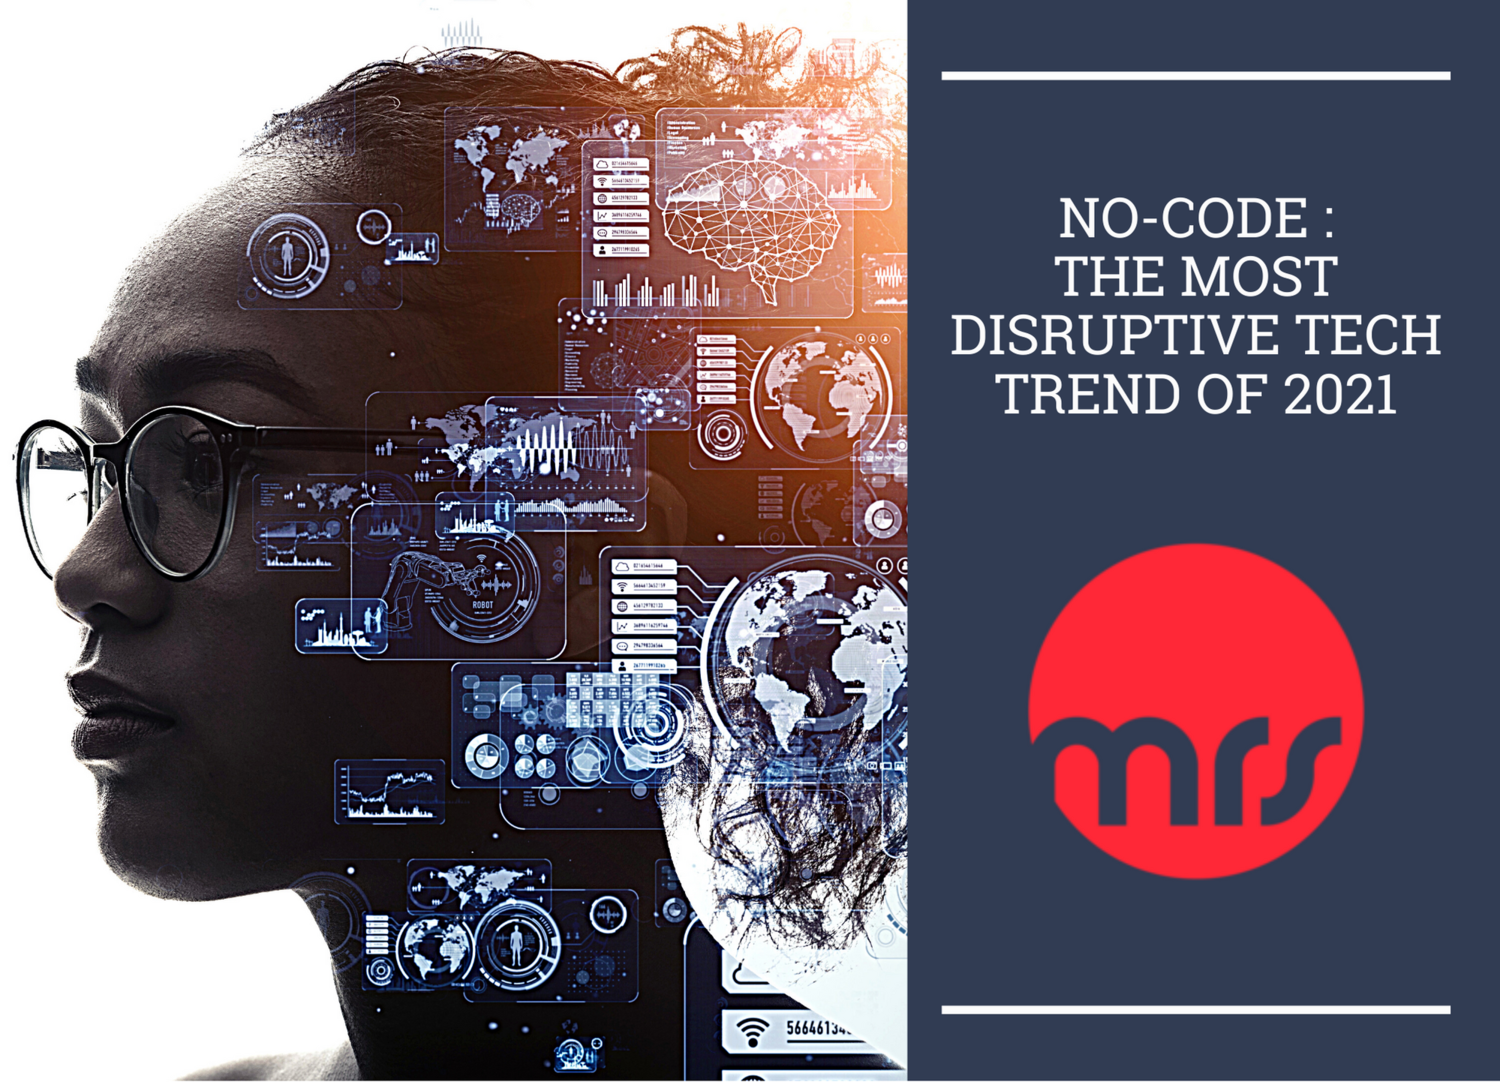 No-Code - The Most Disruptive Tech Trend Of 2021